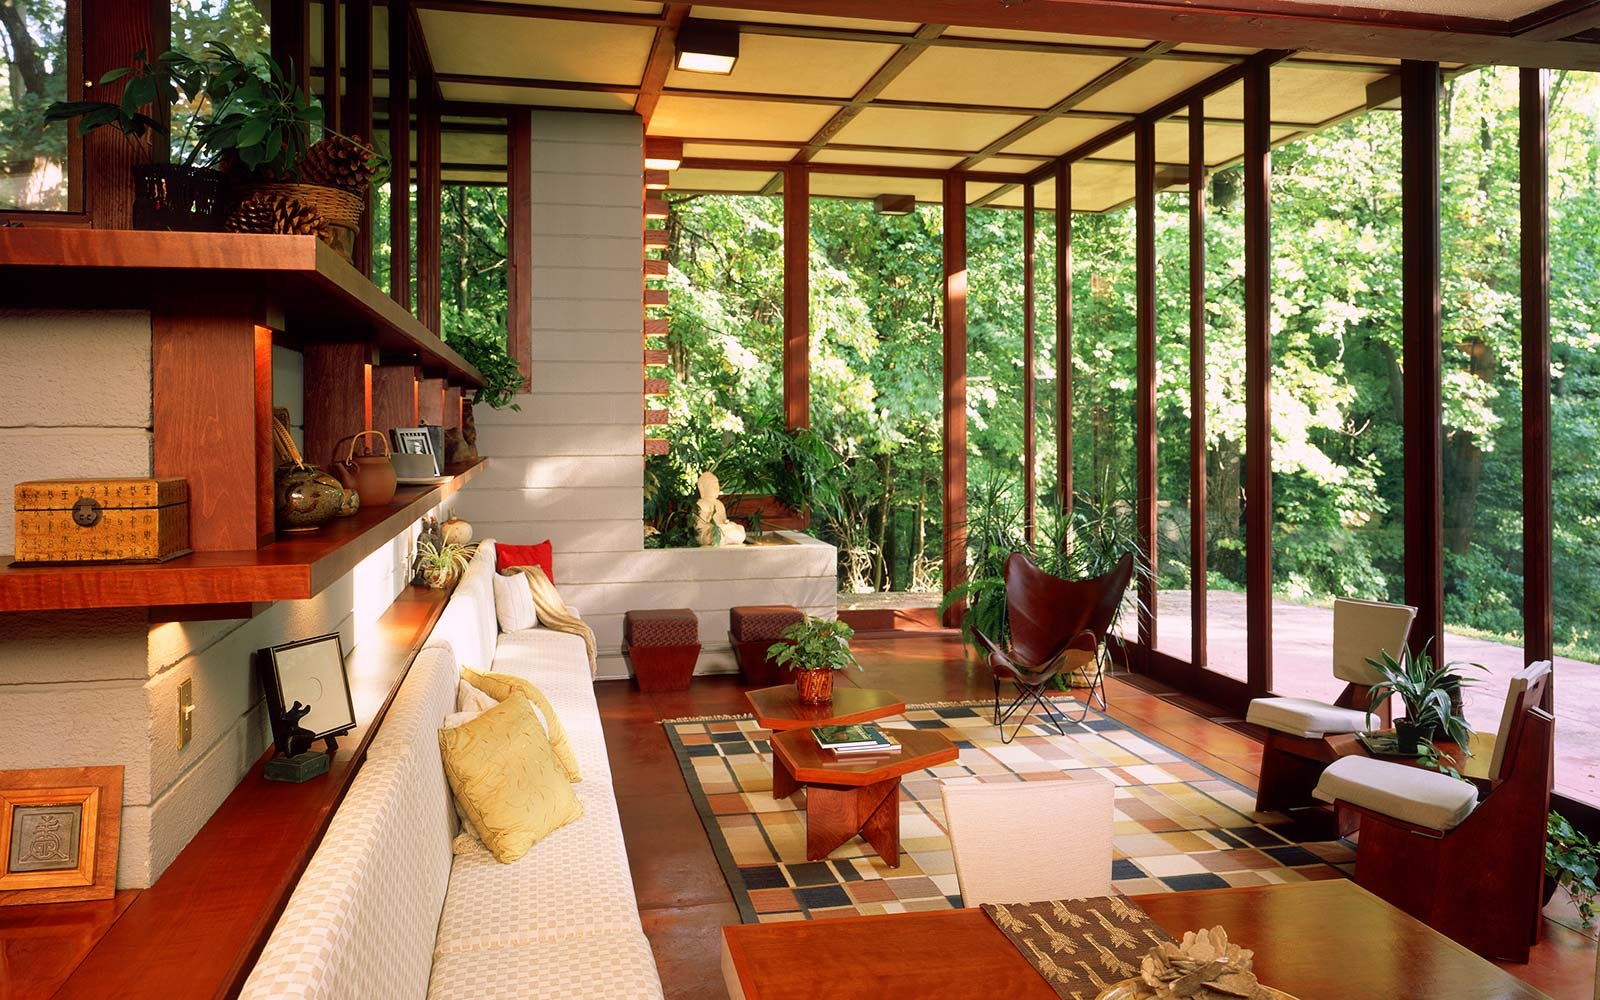 Frank lloyd wright 150th anniversary 10 best flw houses